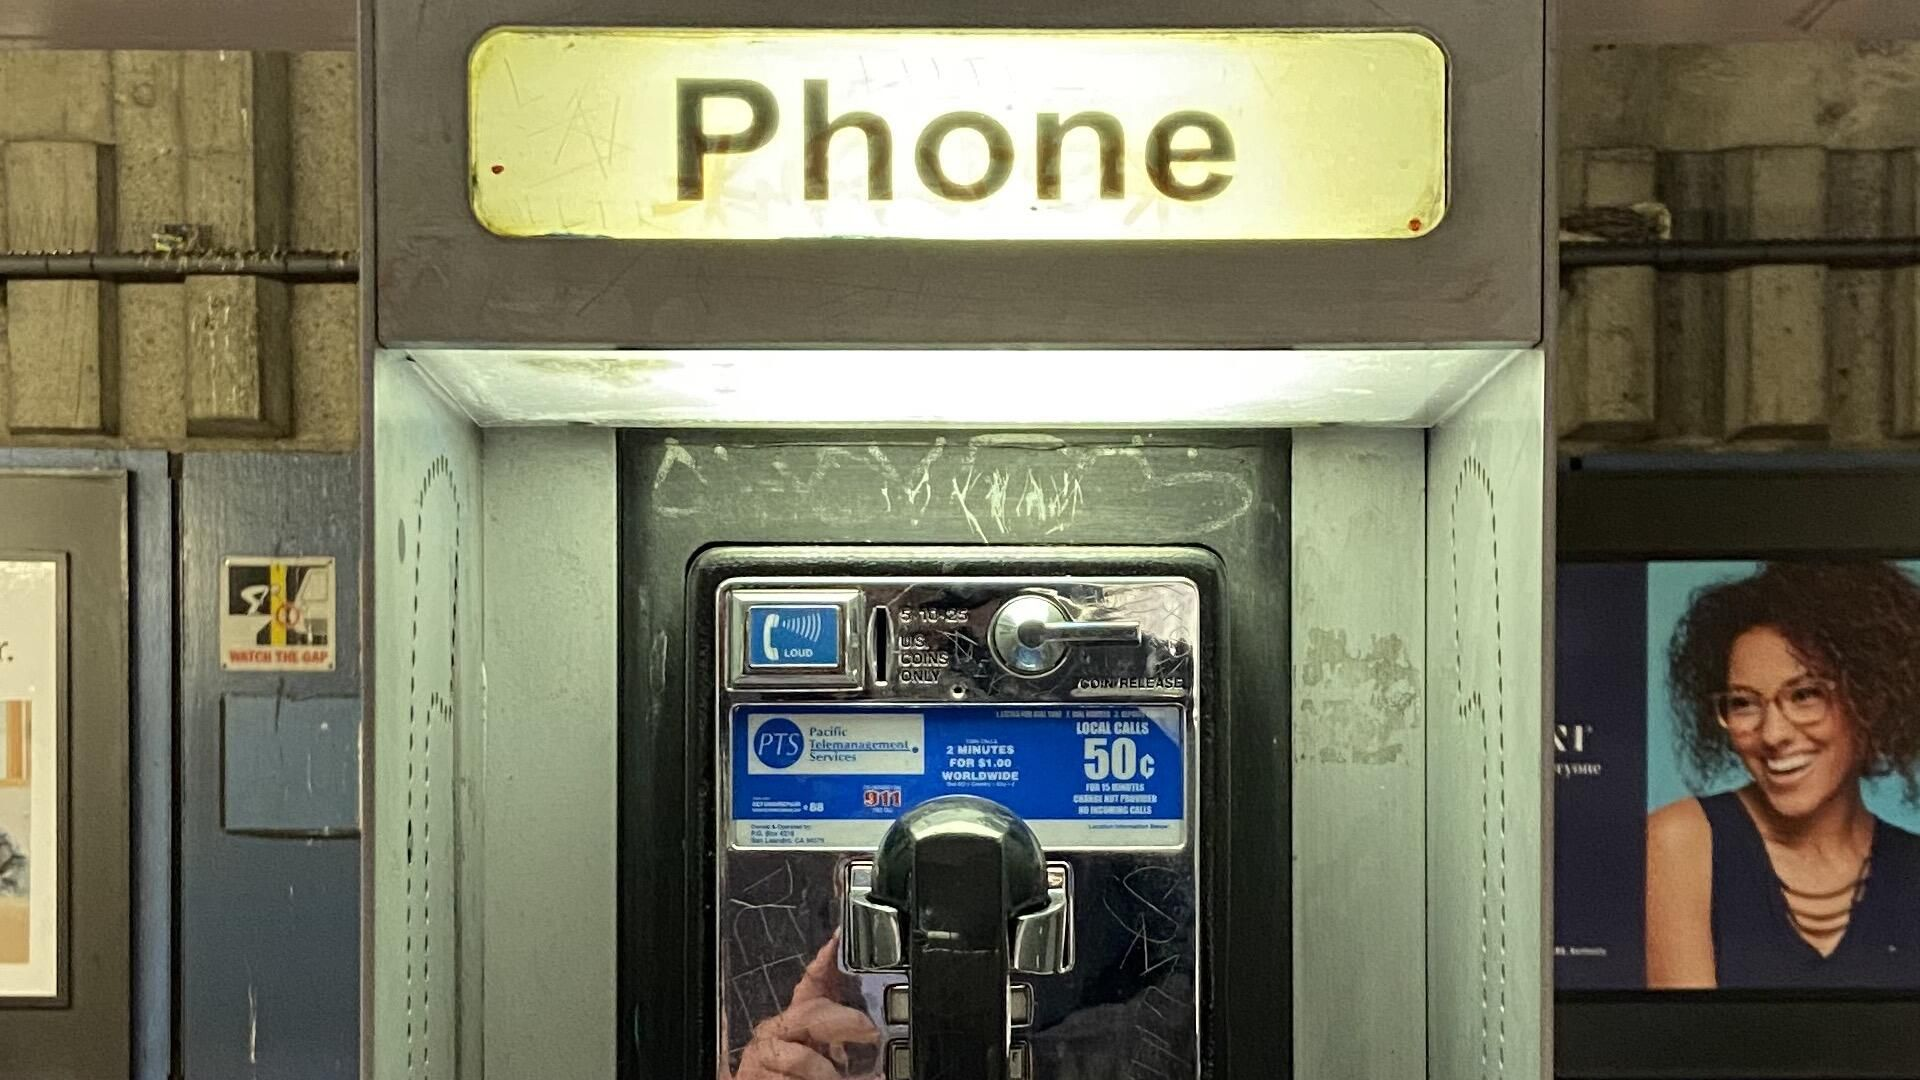 pay-phone-100-percent-crop-iphone-11